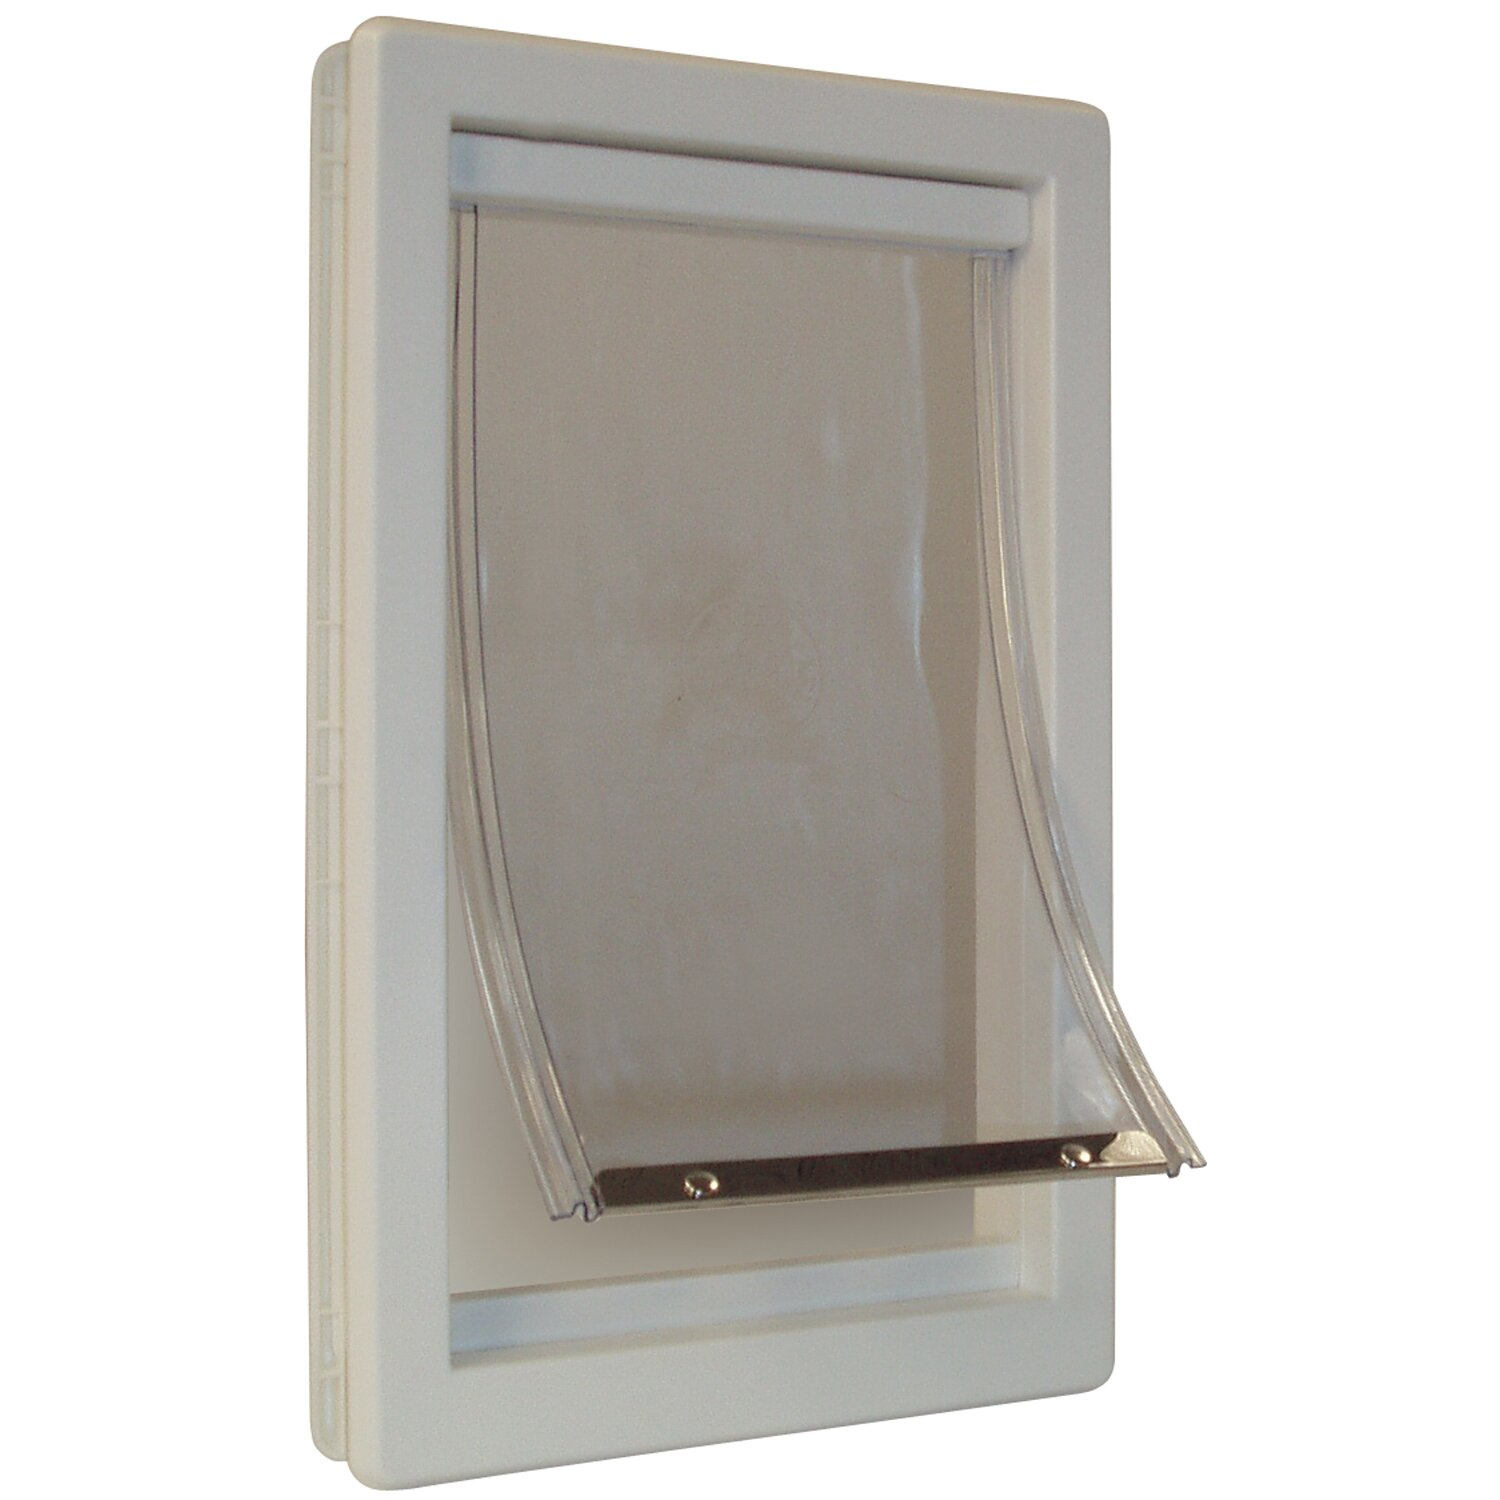 Ideal pet products thermoplastic pet door reviews wayfair for Ideal pet doors